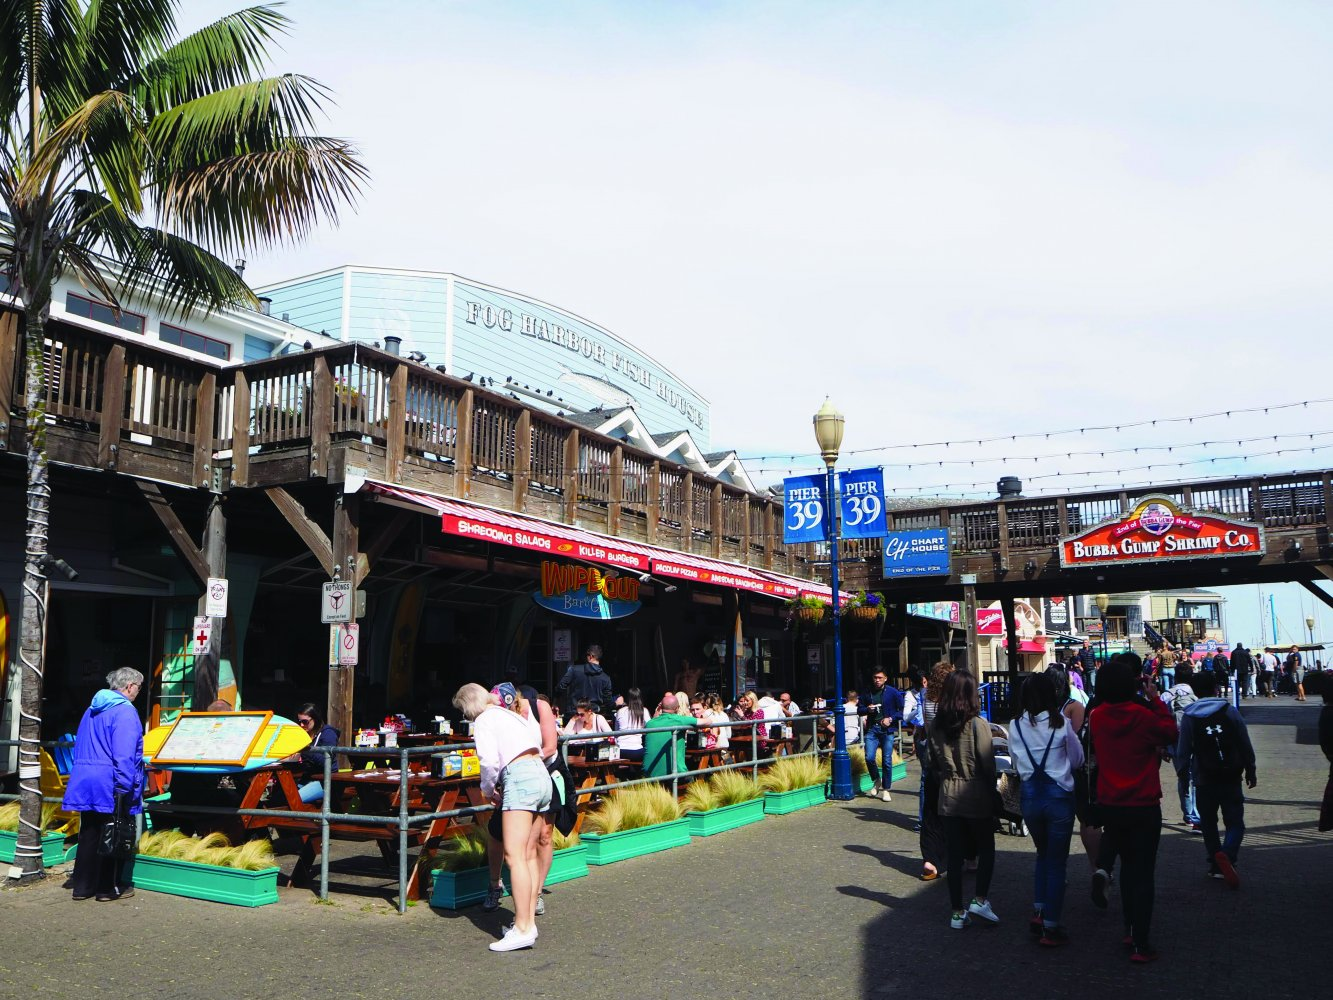 5. Have Dinner at Pier 39